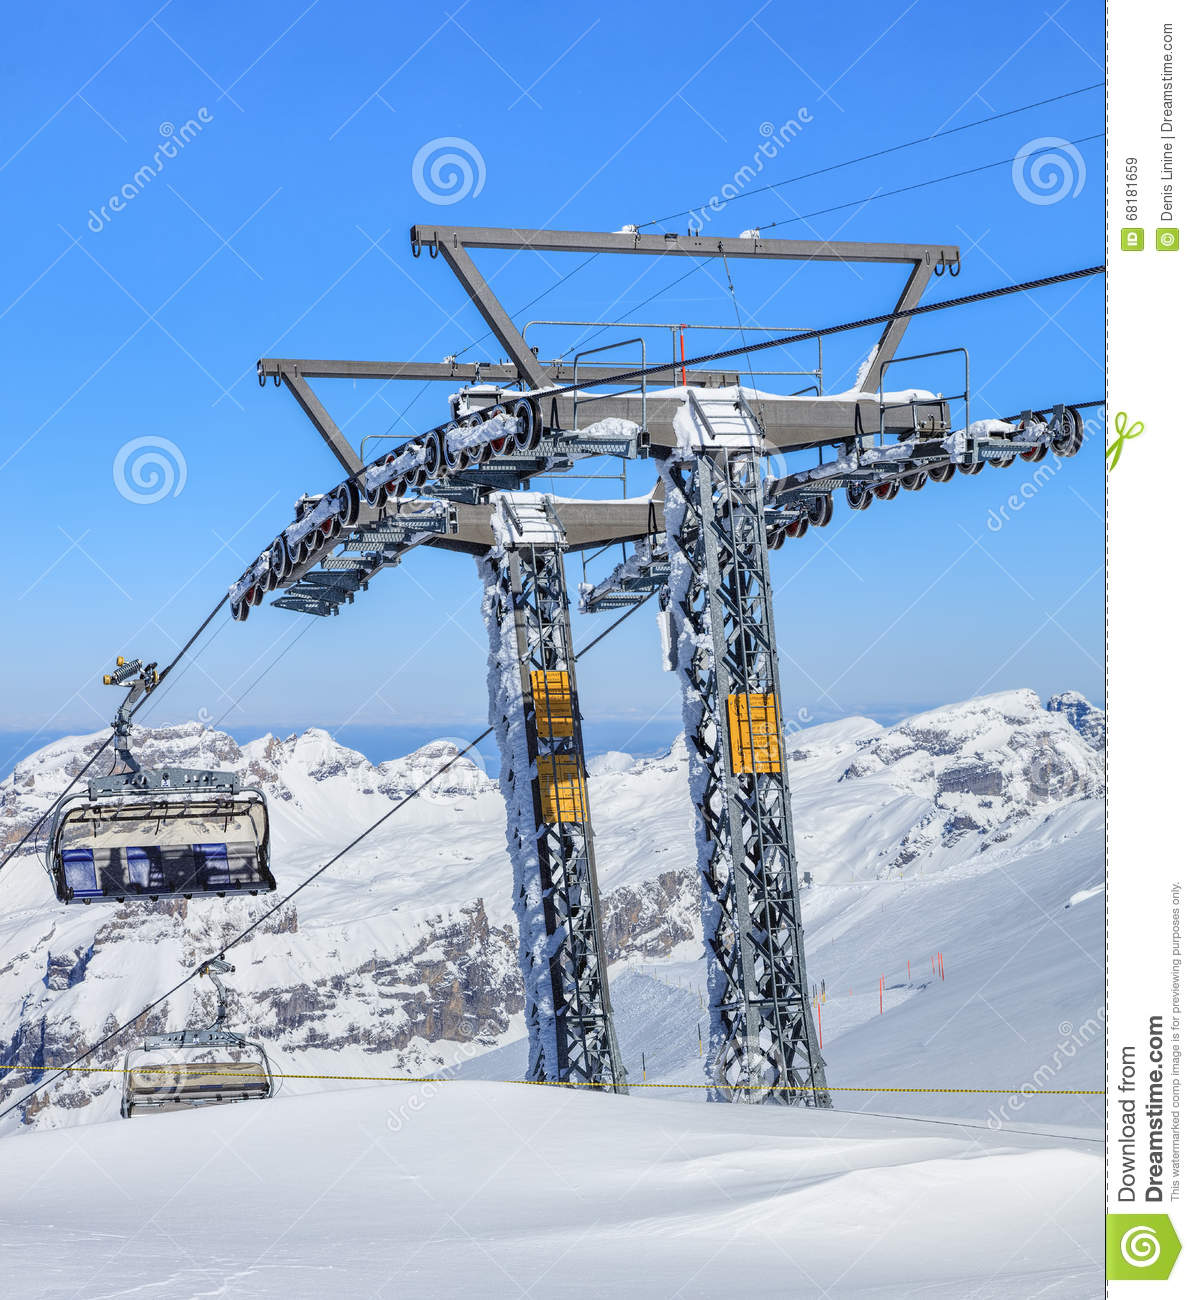 Ice Flyer Ski Lift On Mt. Titlis In Switzerland Editorial Stock.